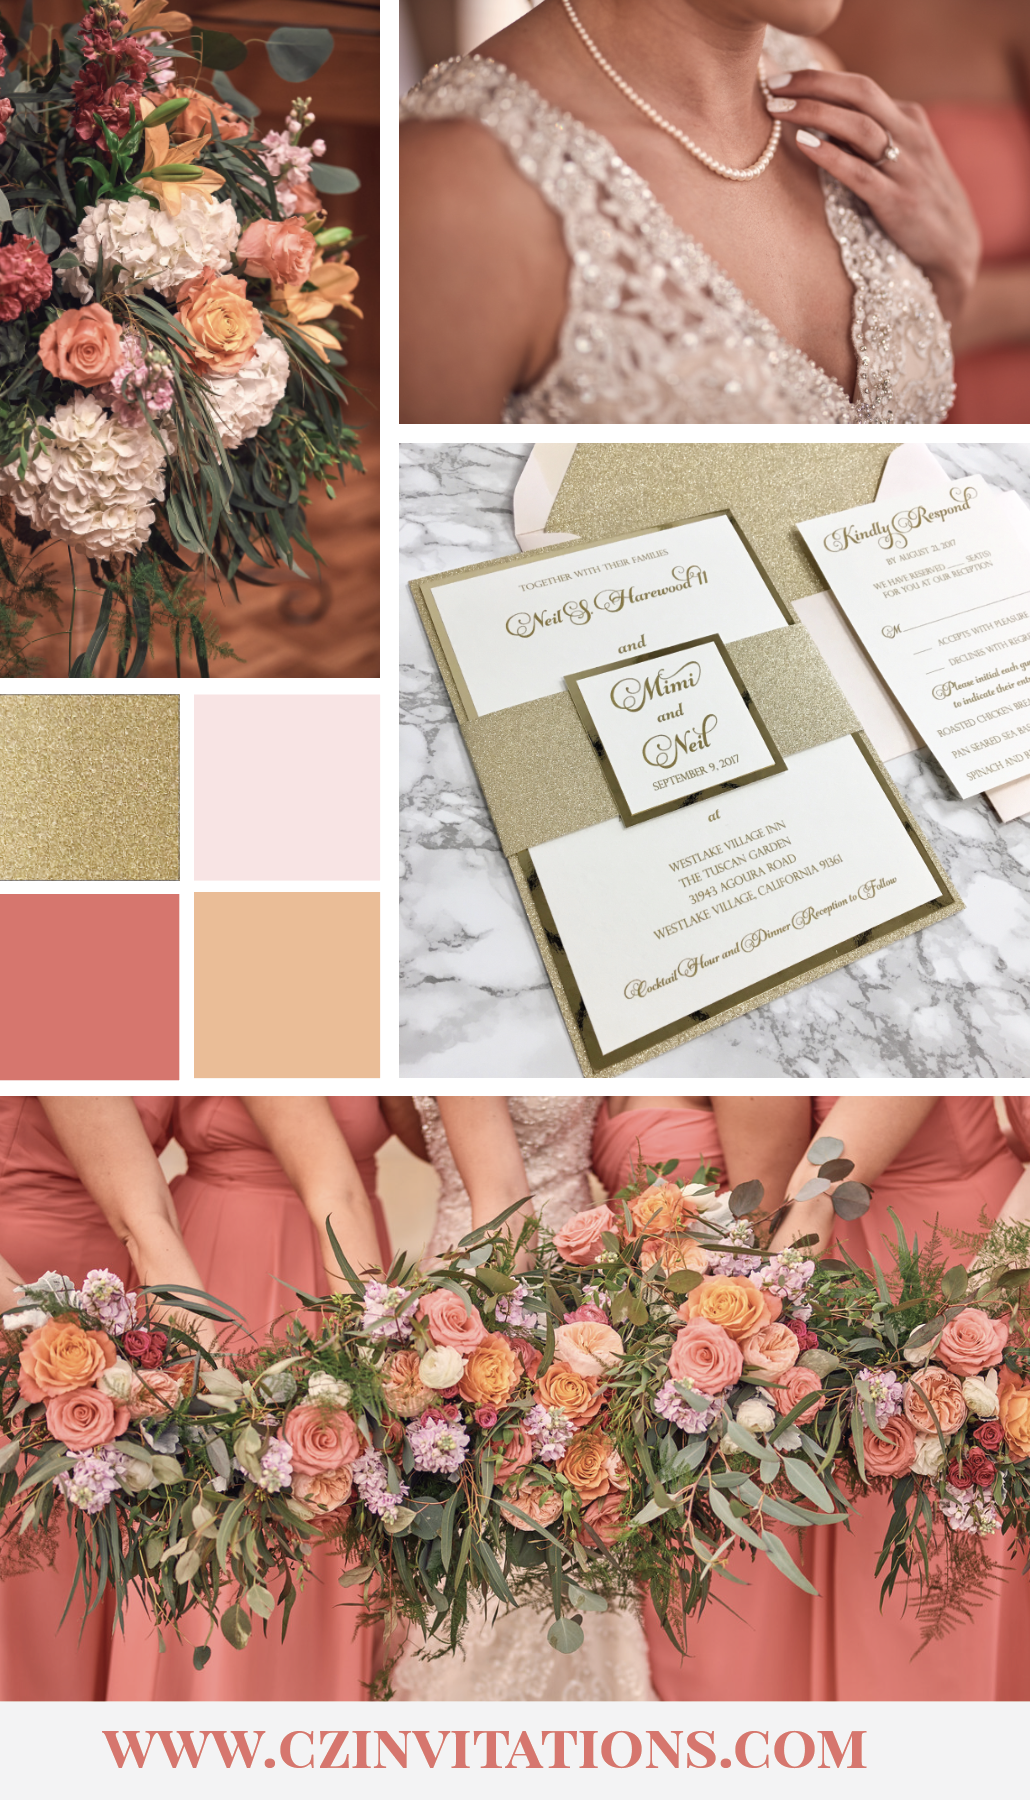 Blush, Peach and Coral are a bright and dreamy color scheme for a perfect Spring or Summer wedding! This color palette features Gold Glitter for extra shine and sparkle!